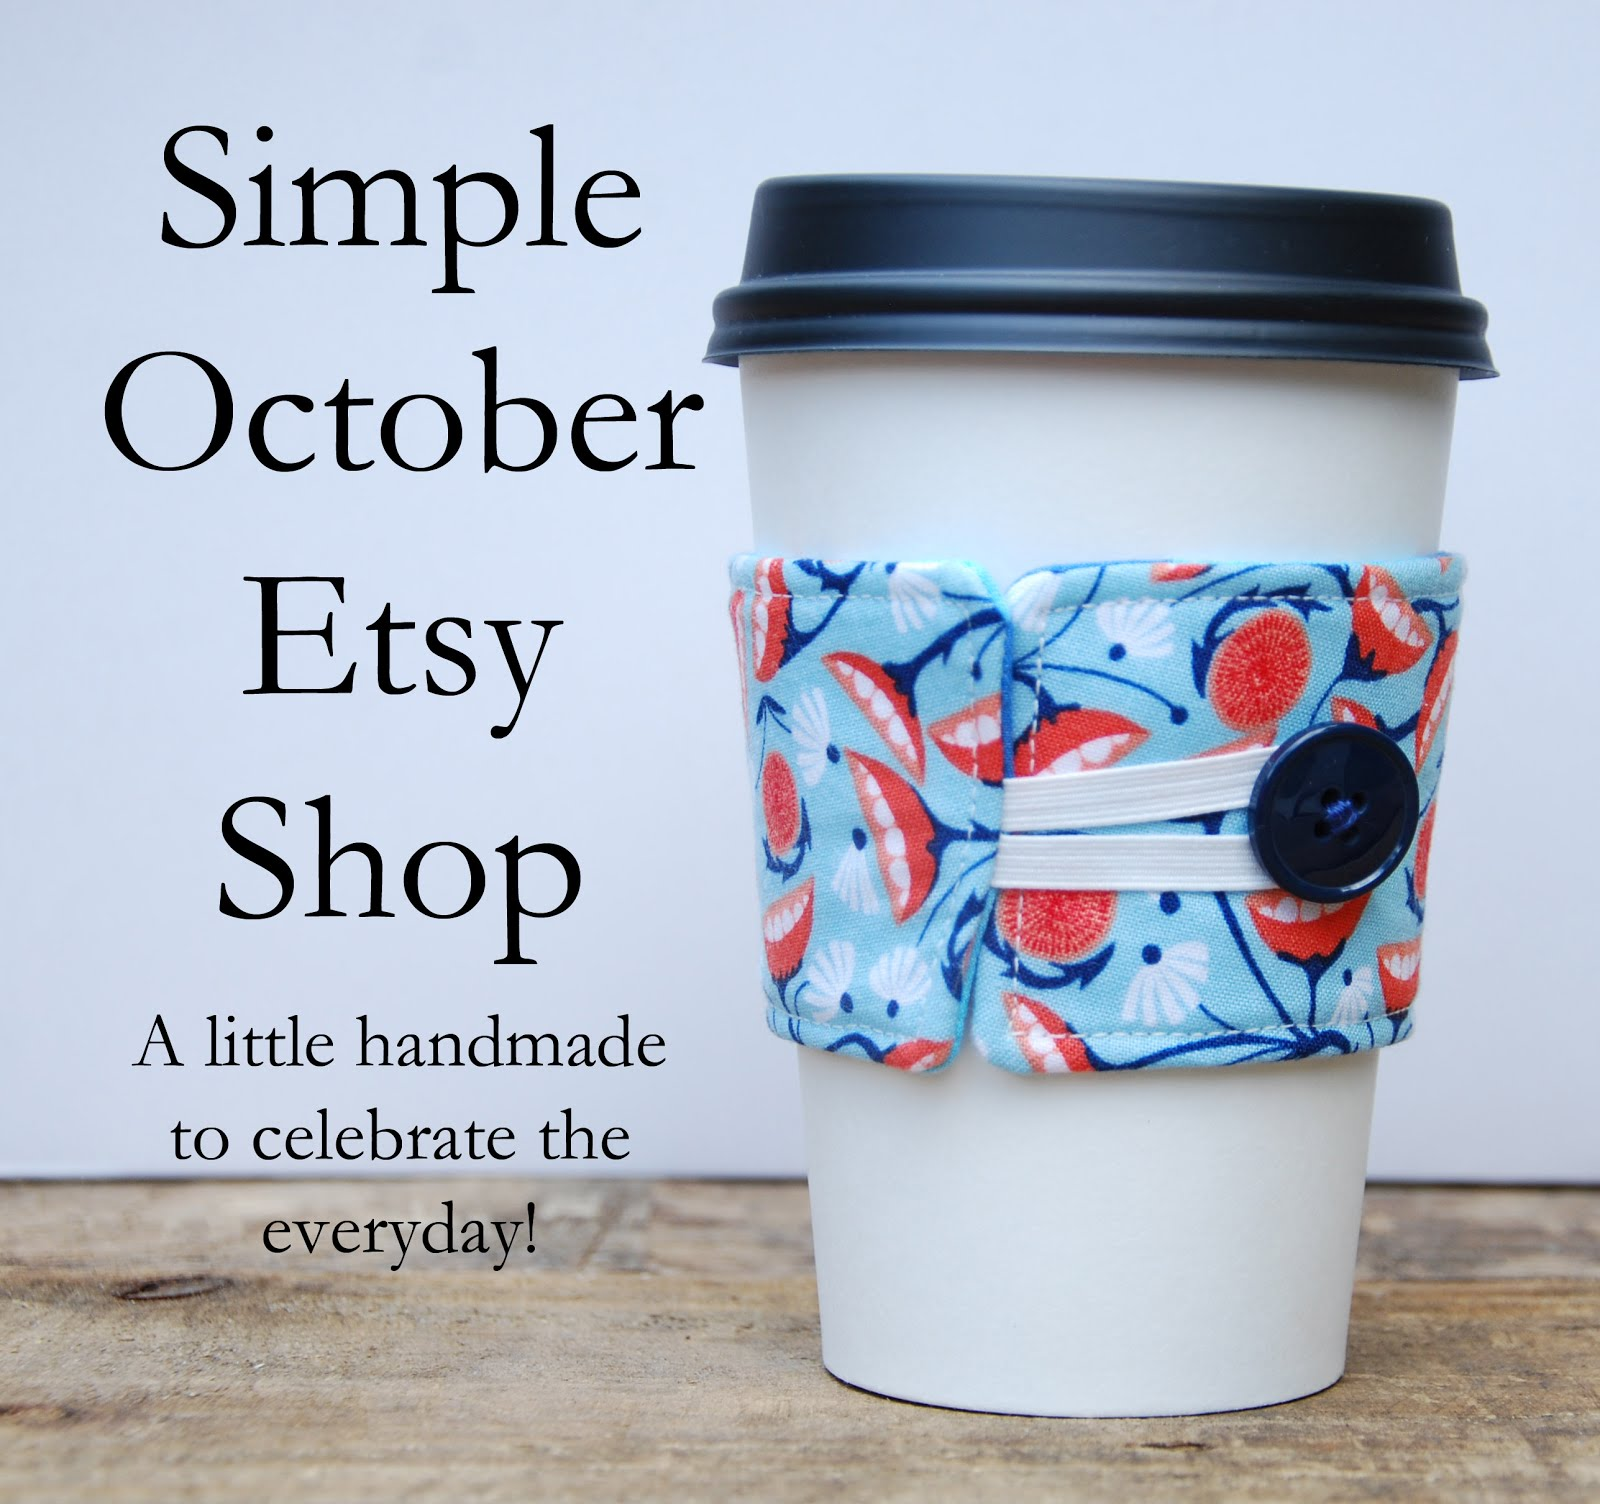 Simple October Etsy Shop